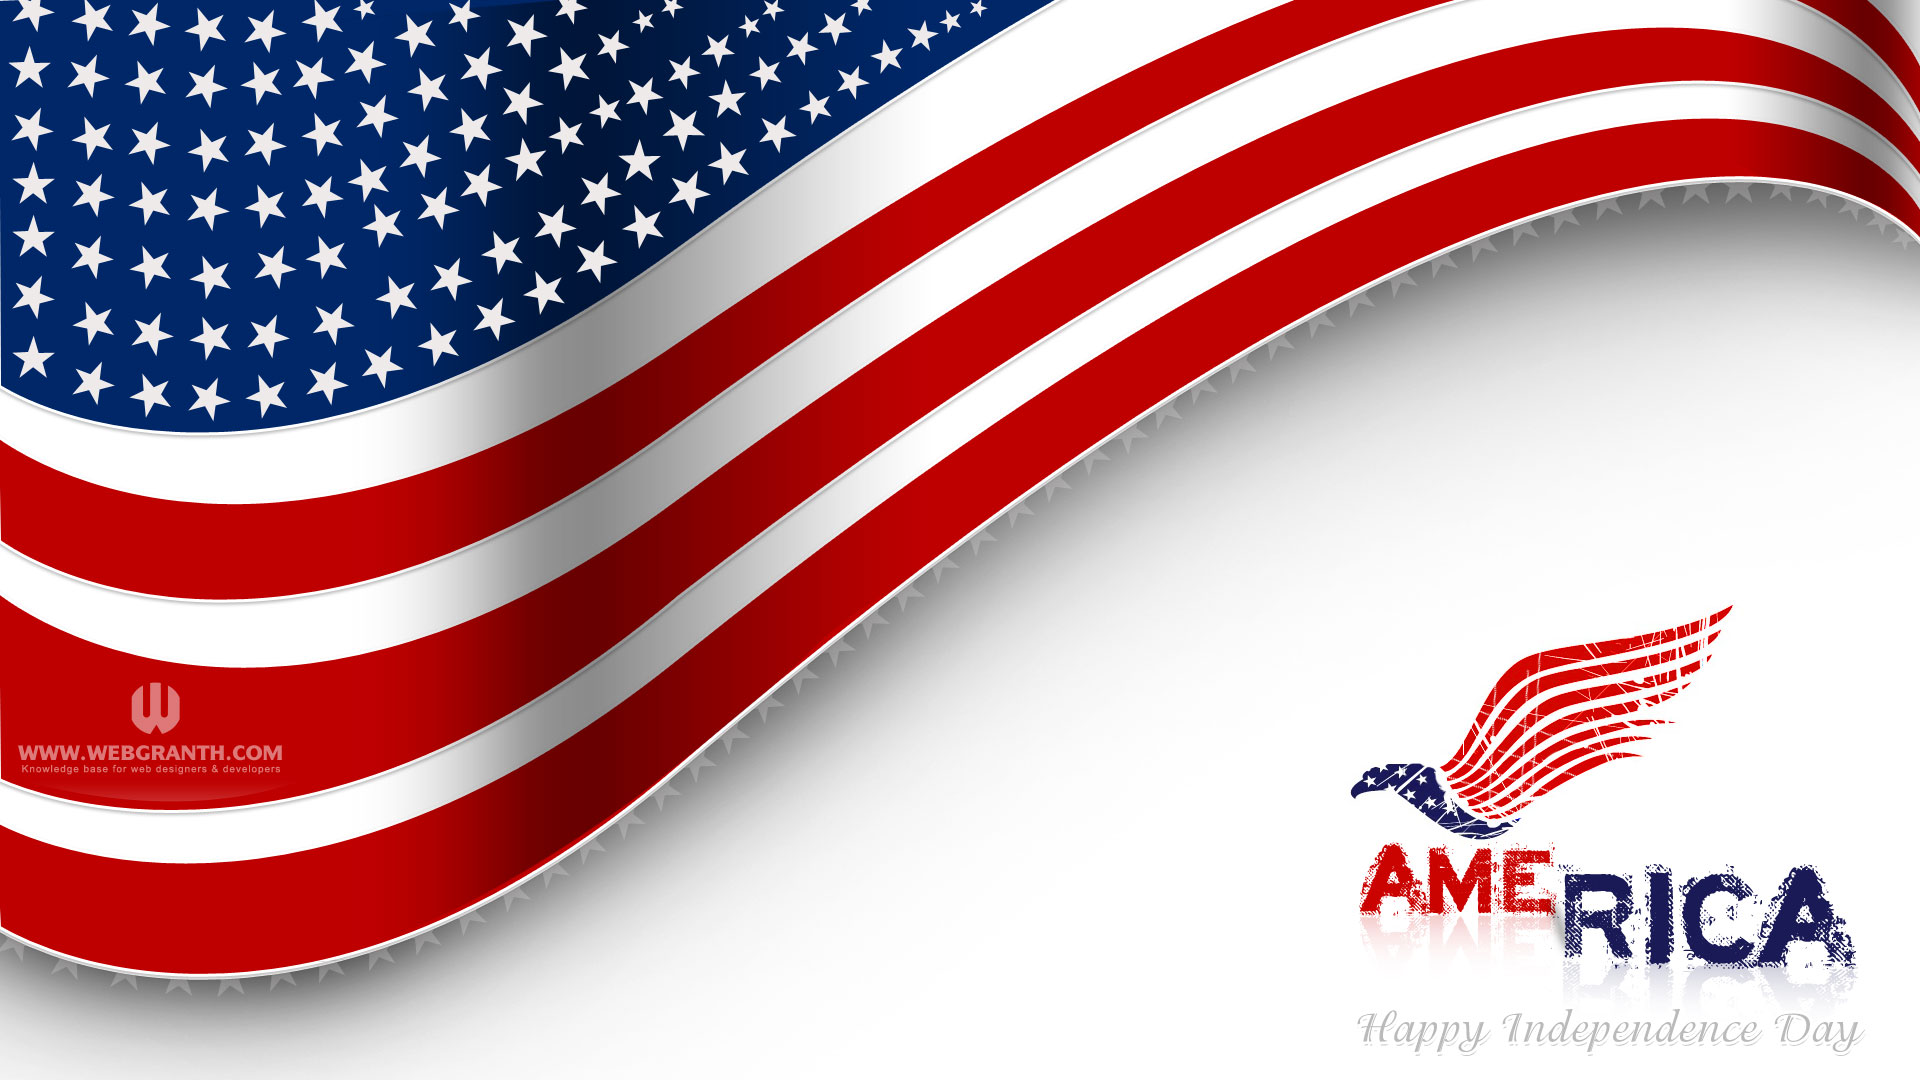 US Independence Day background image desktop wallpaper